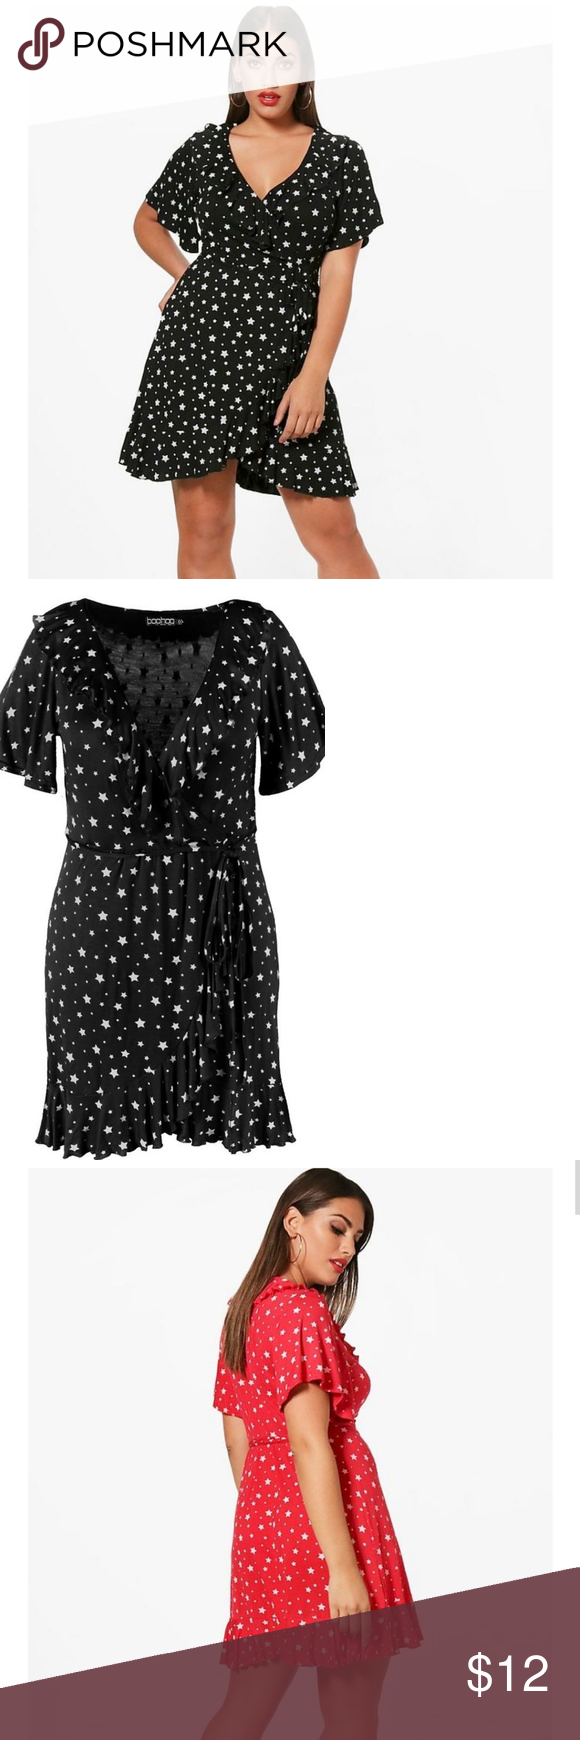 81cceaadd2b2 Boohoo Bella Star Wrap Dress Size 18 I ONLY HAVE THIS DRESS IN BLACK WITH  WHITE